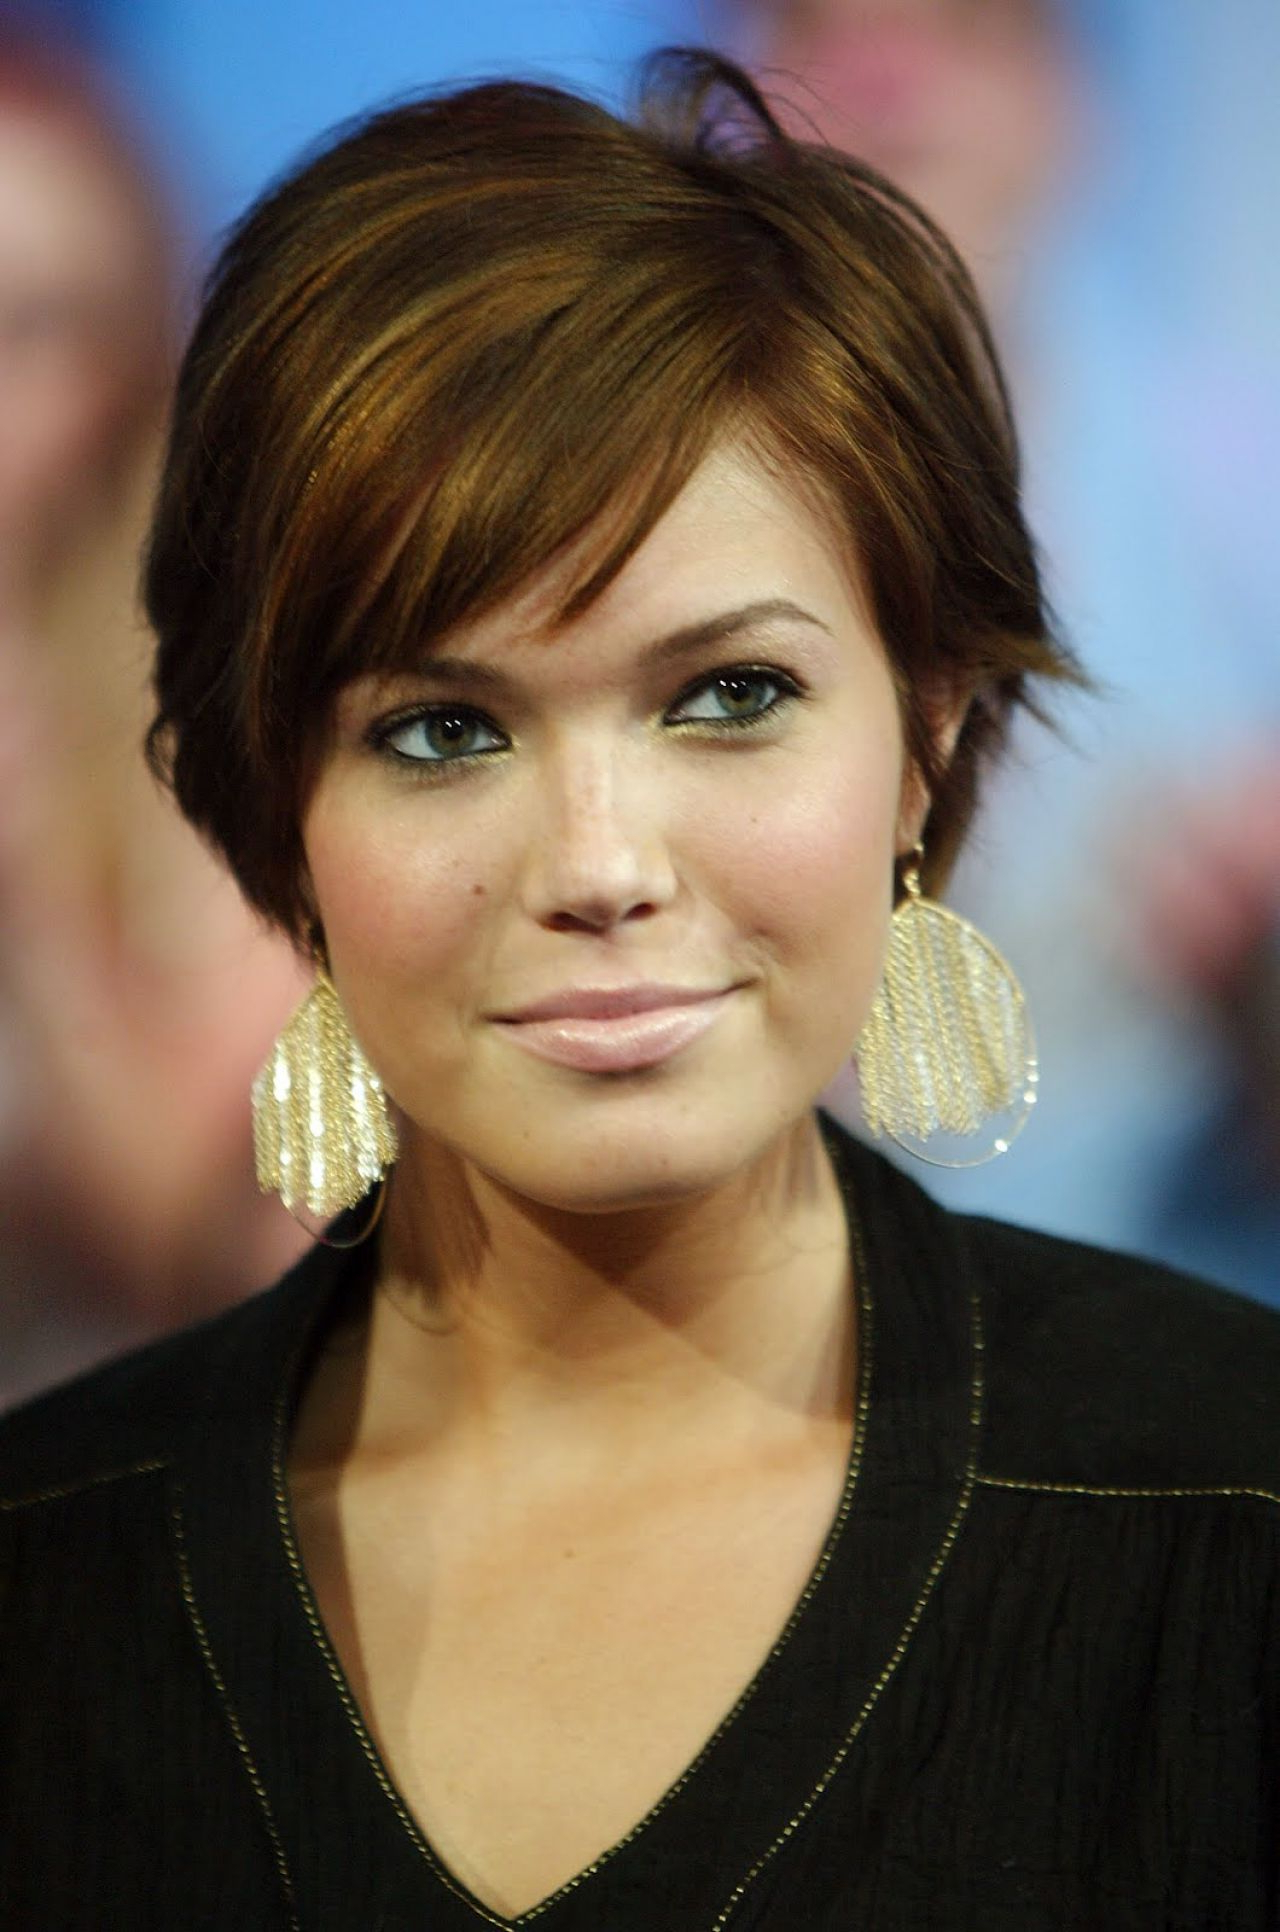 Short Hairstyles For Square Faces Female – Google Search In Short Haircuts For Square Face (View 17 of 25)